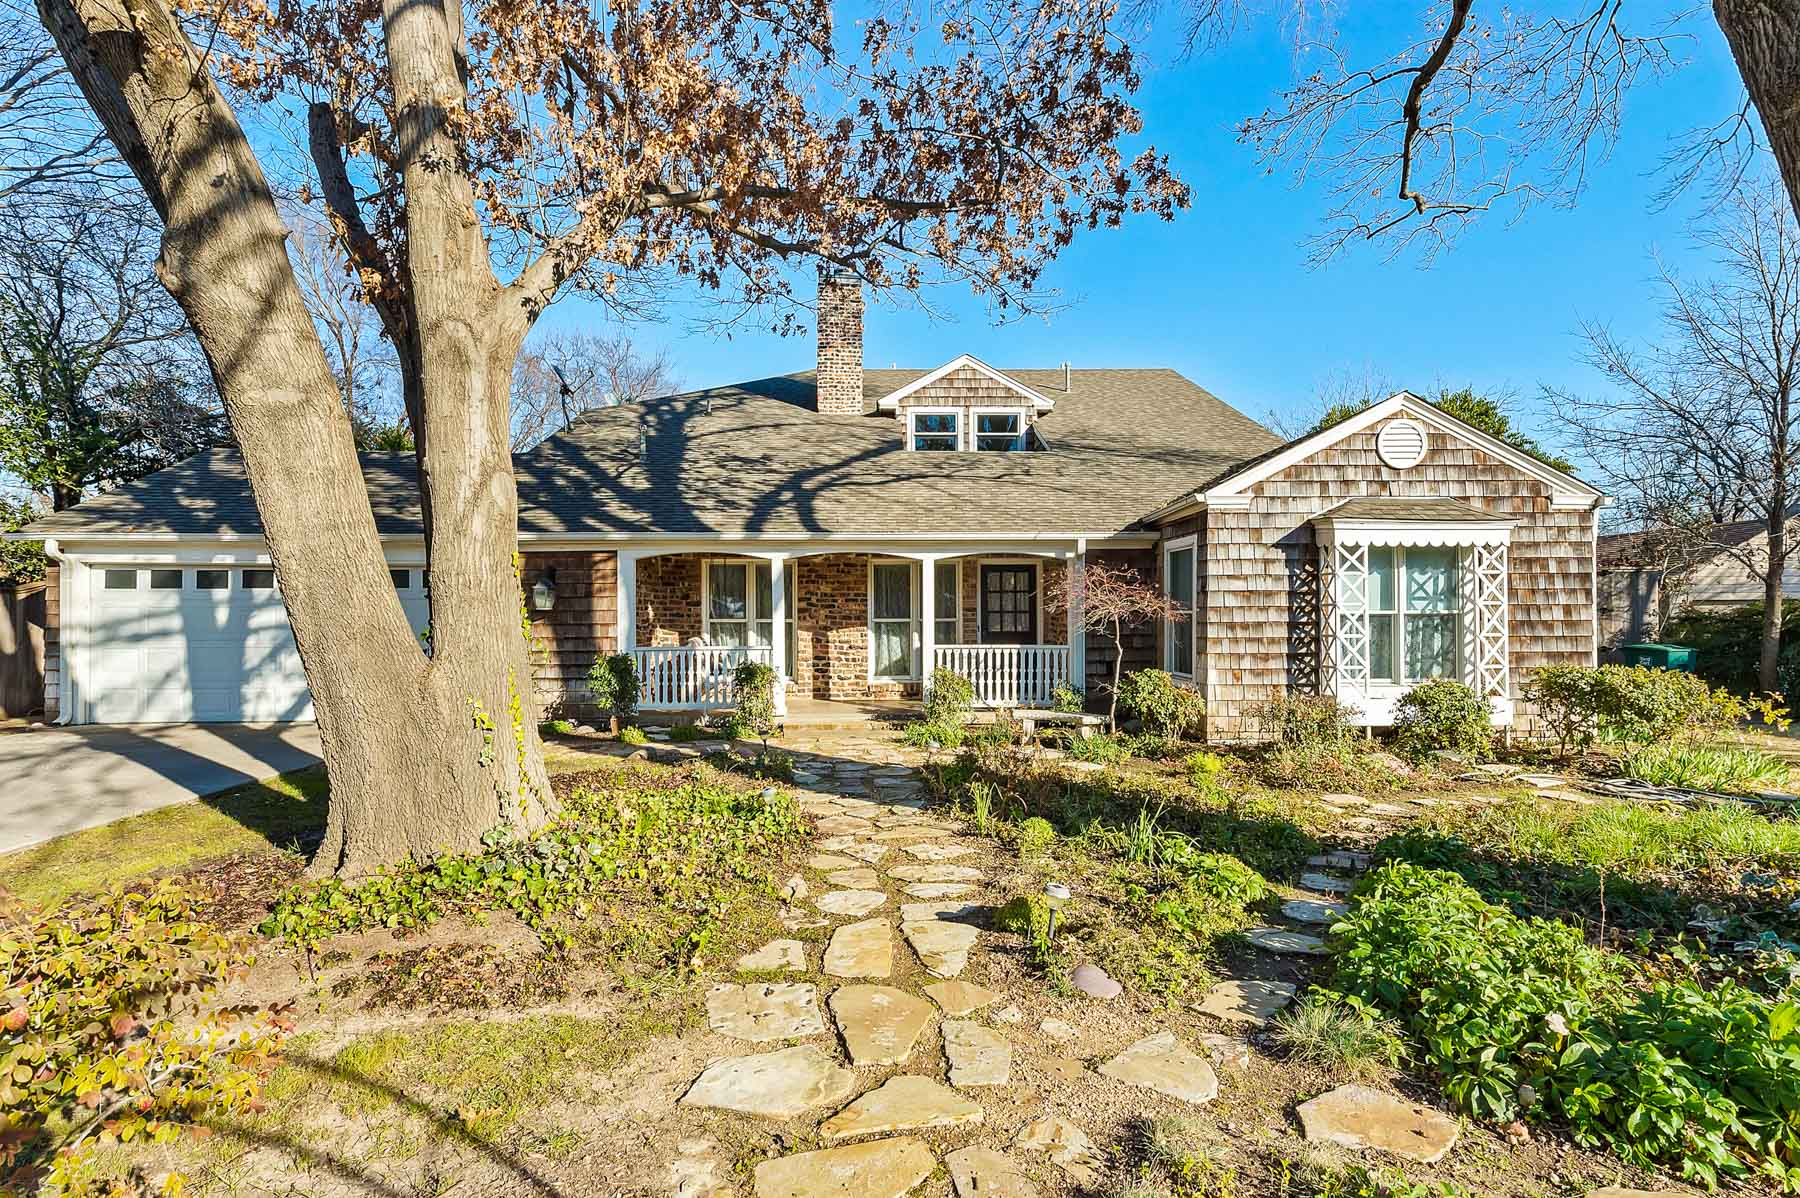 Single Family Home for Sale at Charming Monticello Traditional 208 Lindenwood Drive Fort Worth, Texas, 76107 United States